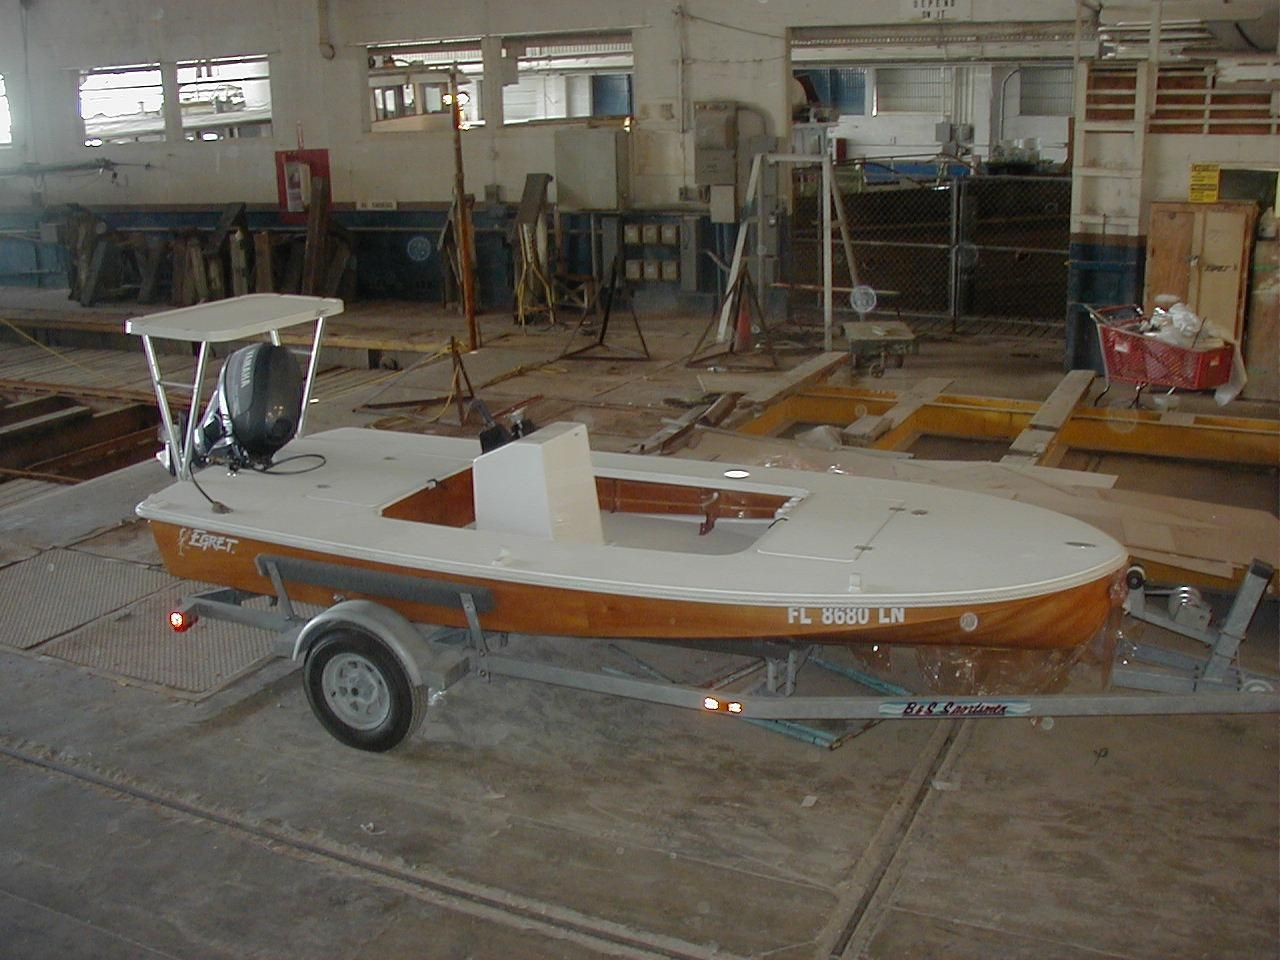 Home built jet dinghy s from new zealand boat design forums - Anybody Built Their Own Flats Boat The Hull Truth Boating And Fishing Forum